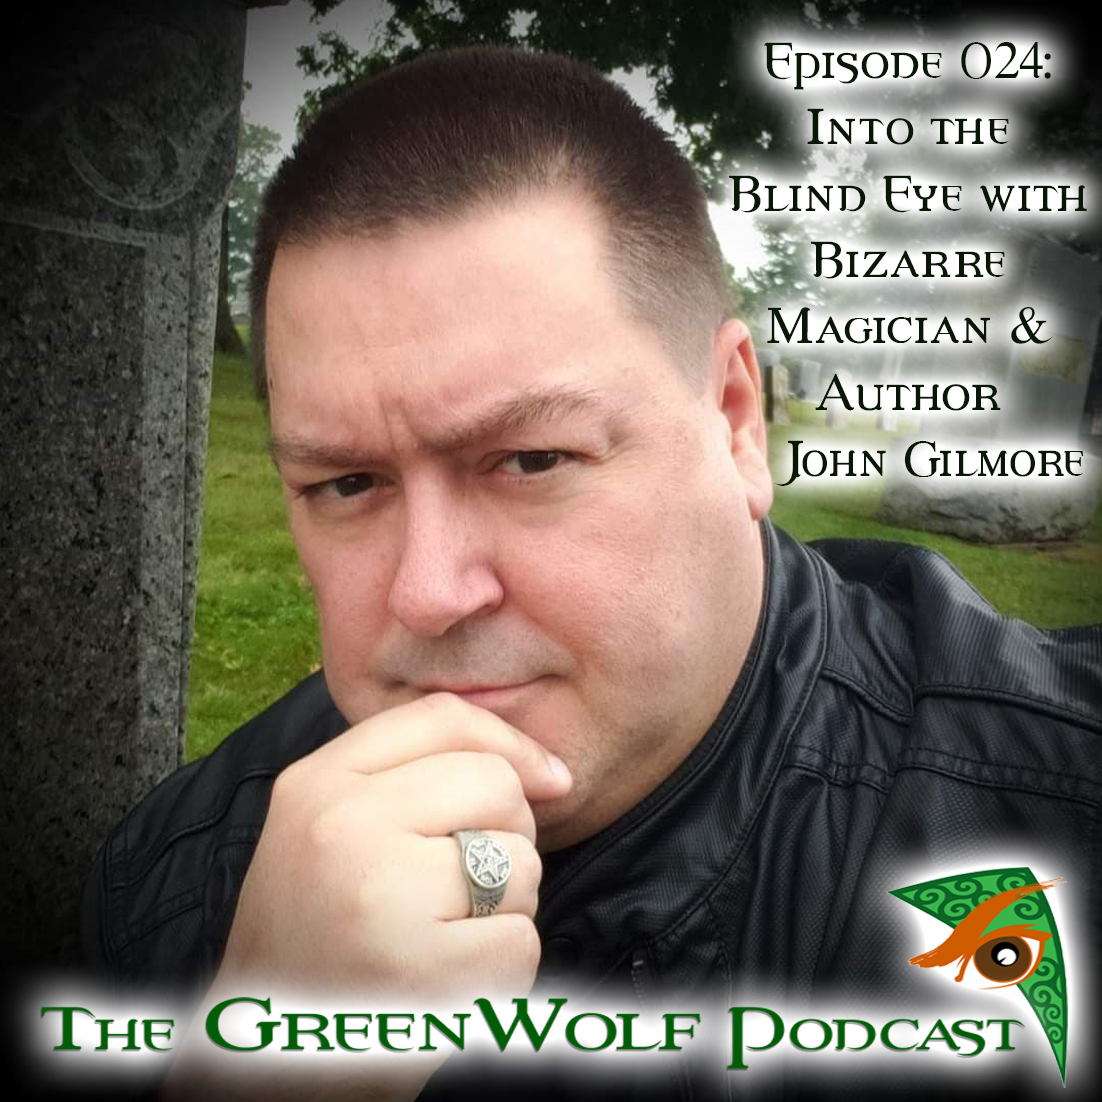 The GreenWolf Podcast - Ep 024- Into the Blind Eye with Bizarre Magician, Author, & Creator John Gilmore